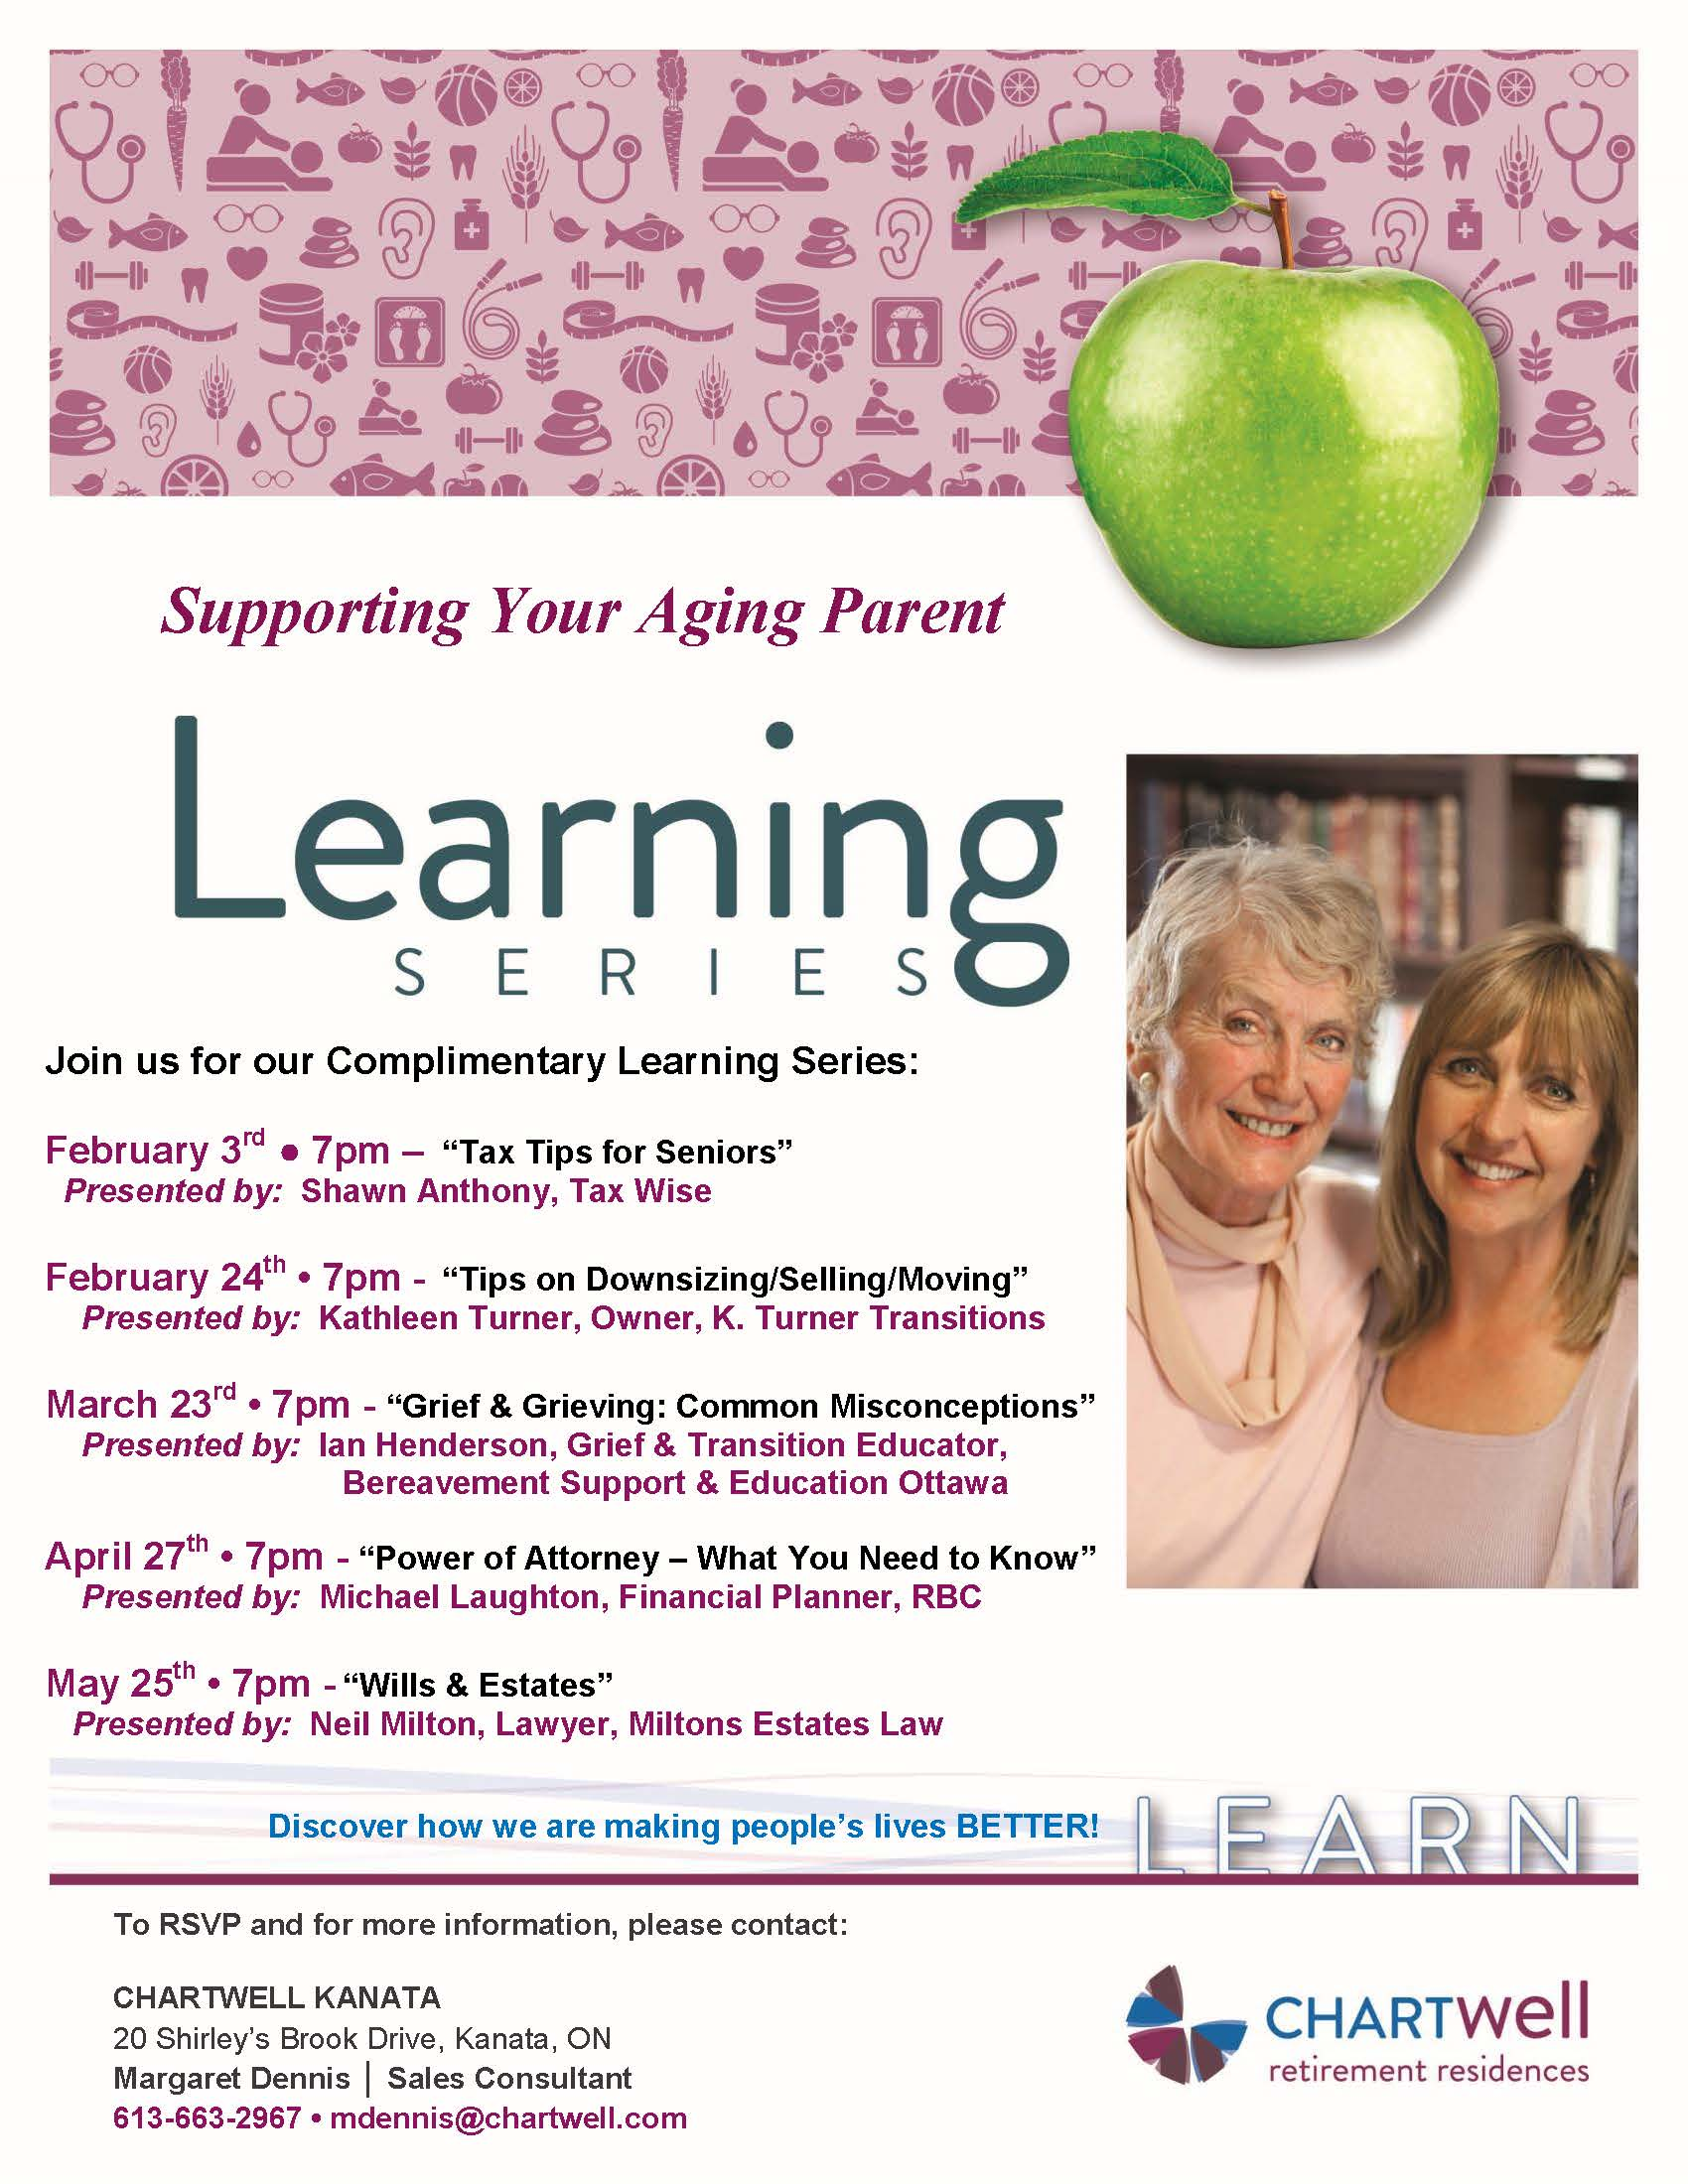 Kathy spoke to a capacity crowd at Chartwell Kanata Retirement Residence on Monday February 29 2016 for the Learning Series- Supporting Your Aging Parent. Very well received and great participation with the inquisitive group that attended.